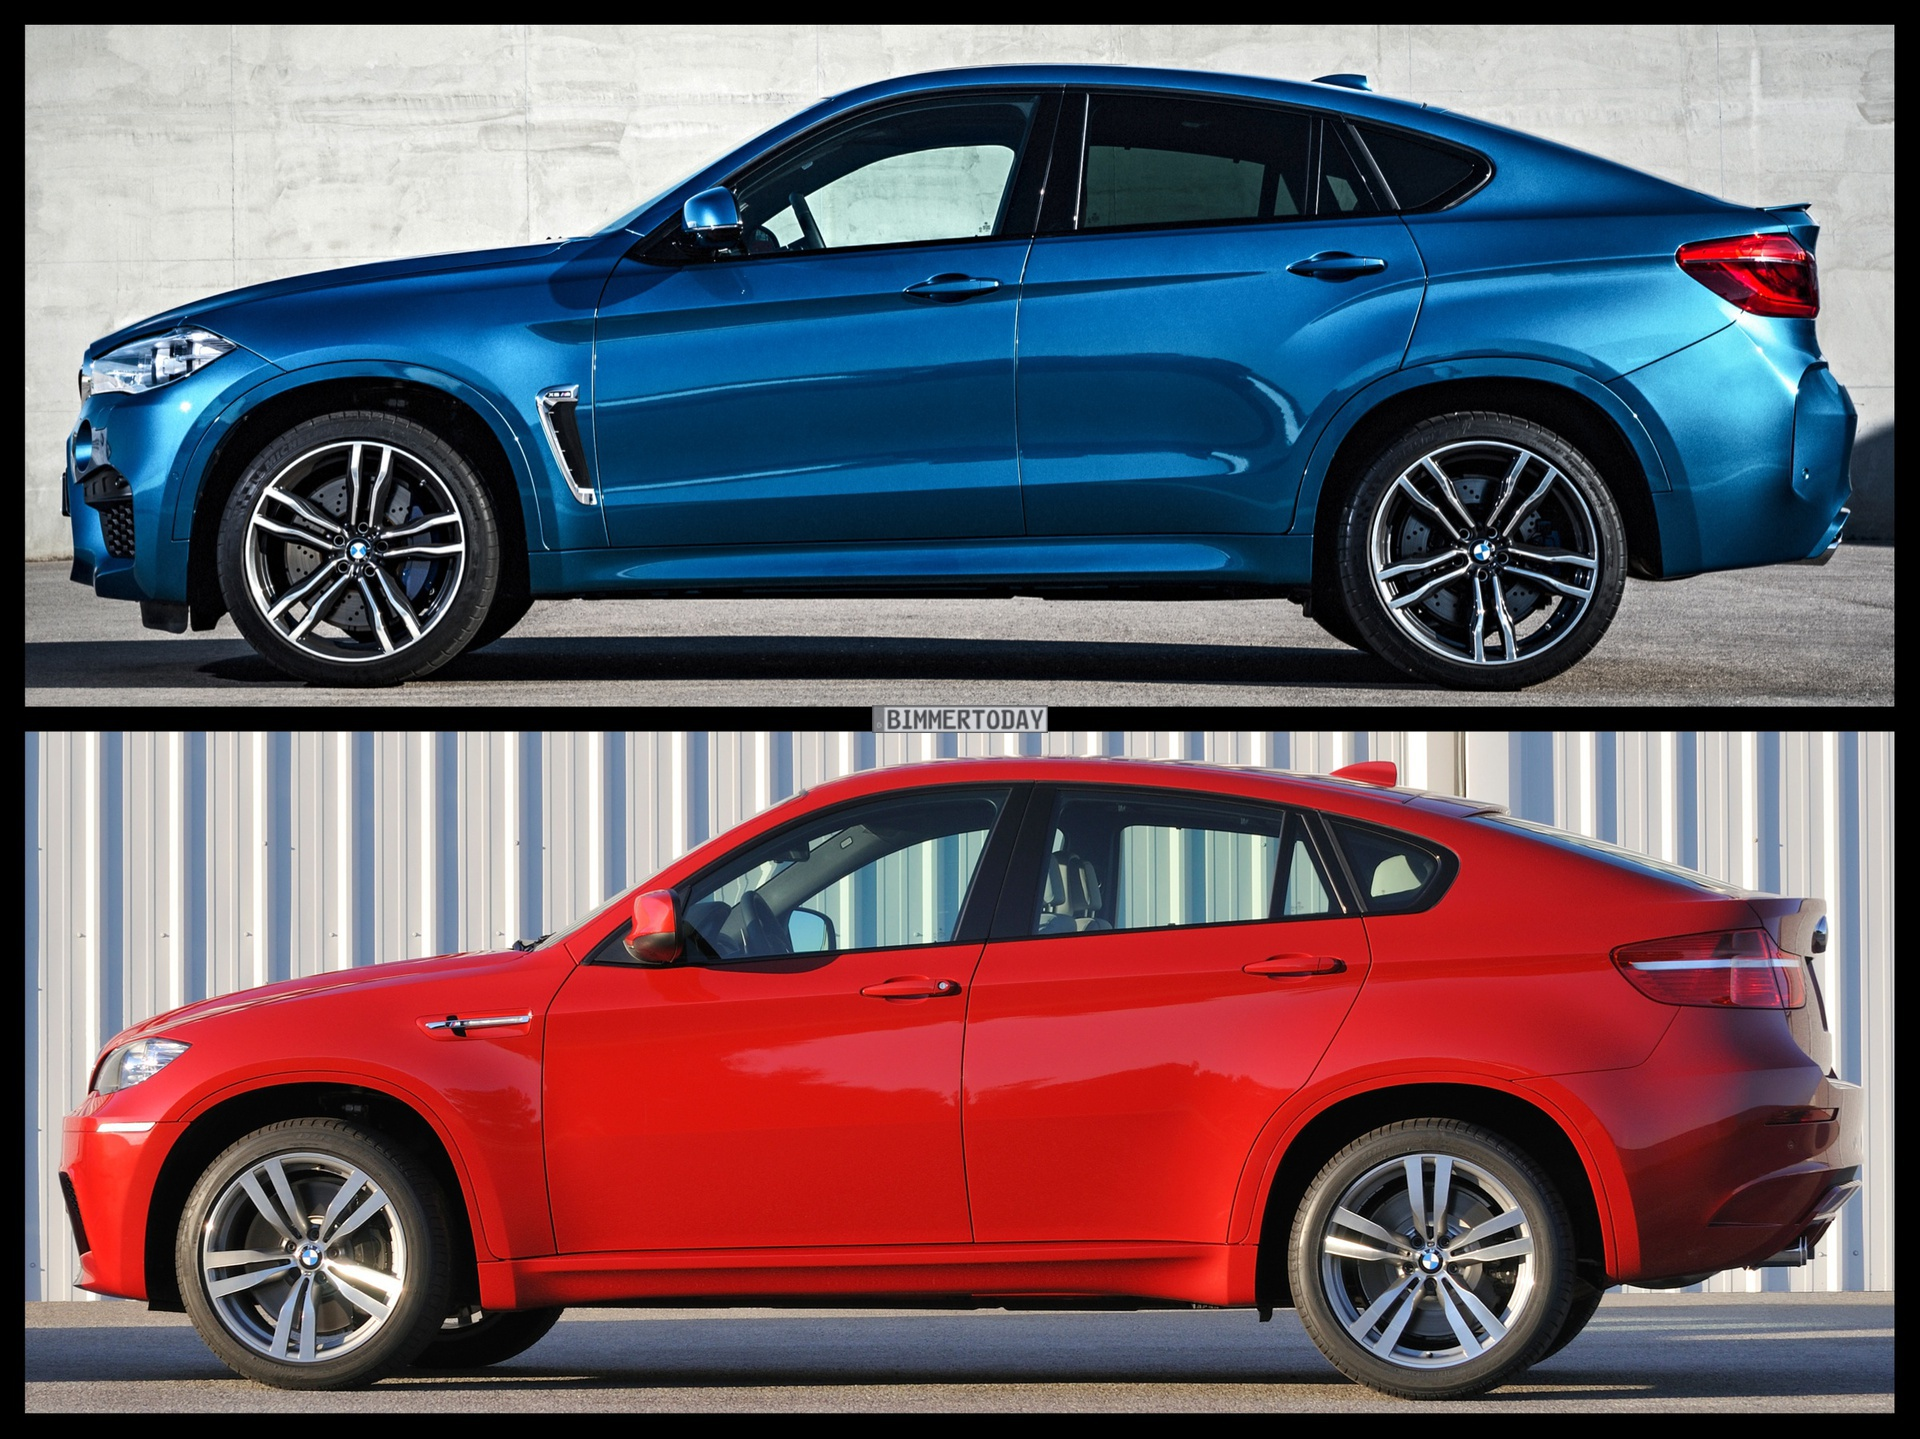 photo comparison f86 bmw x6 m vs e71 bmw x6 m. Black Bedroom Furniture Sets. Home Design Ideas